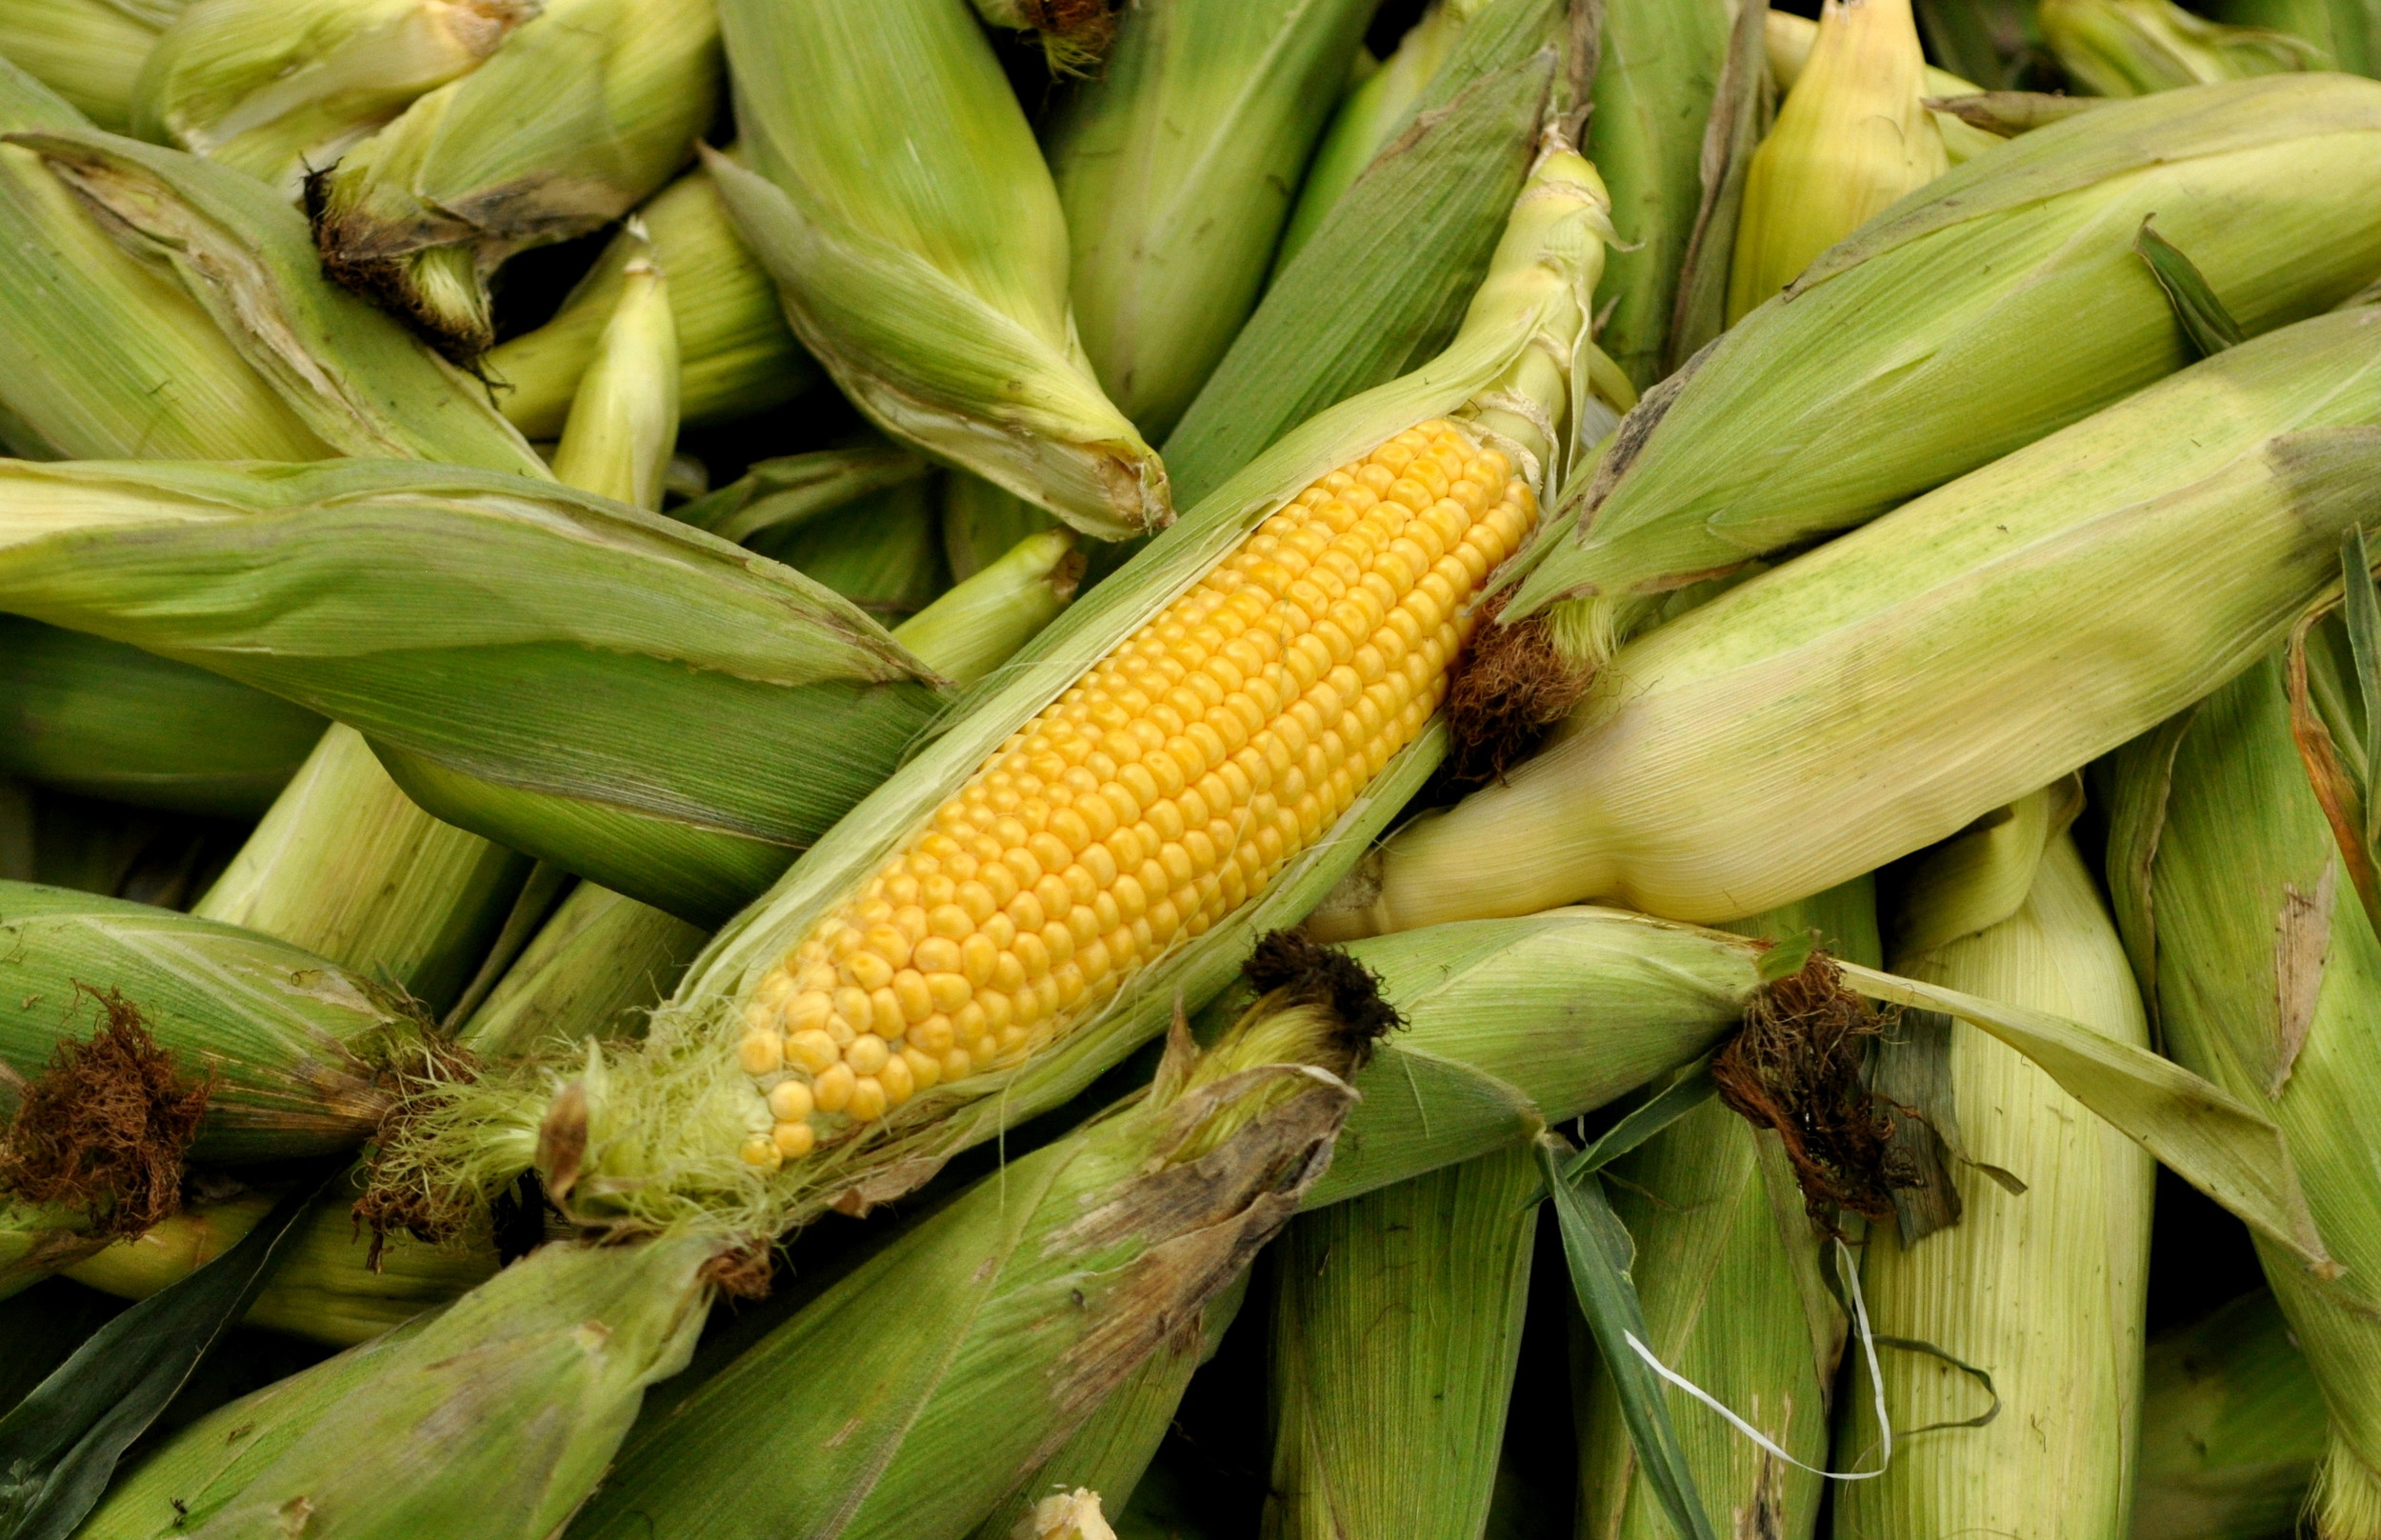 Basin 'R' Yellow Sweet Corn from Lyall Farms. Copyright Zachary D. Lyons.